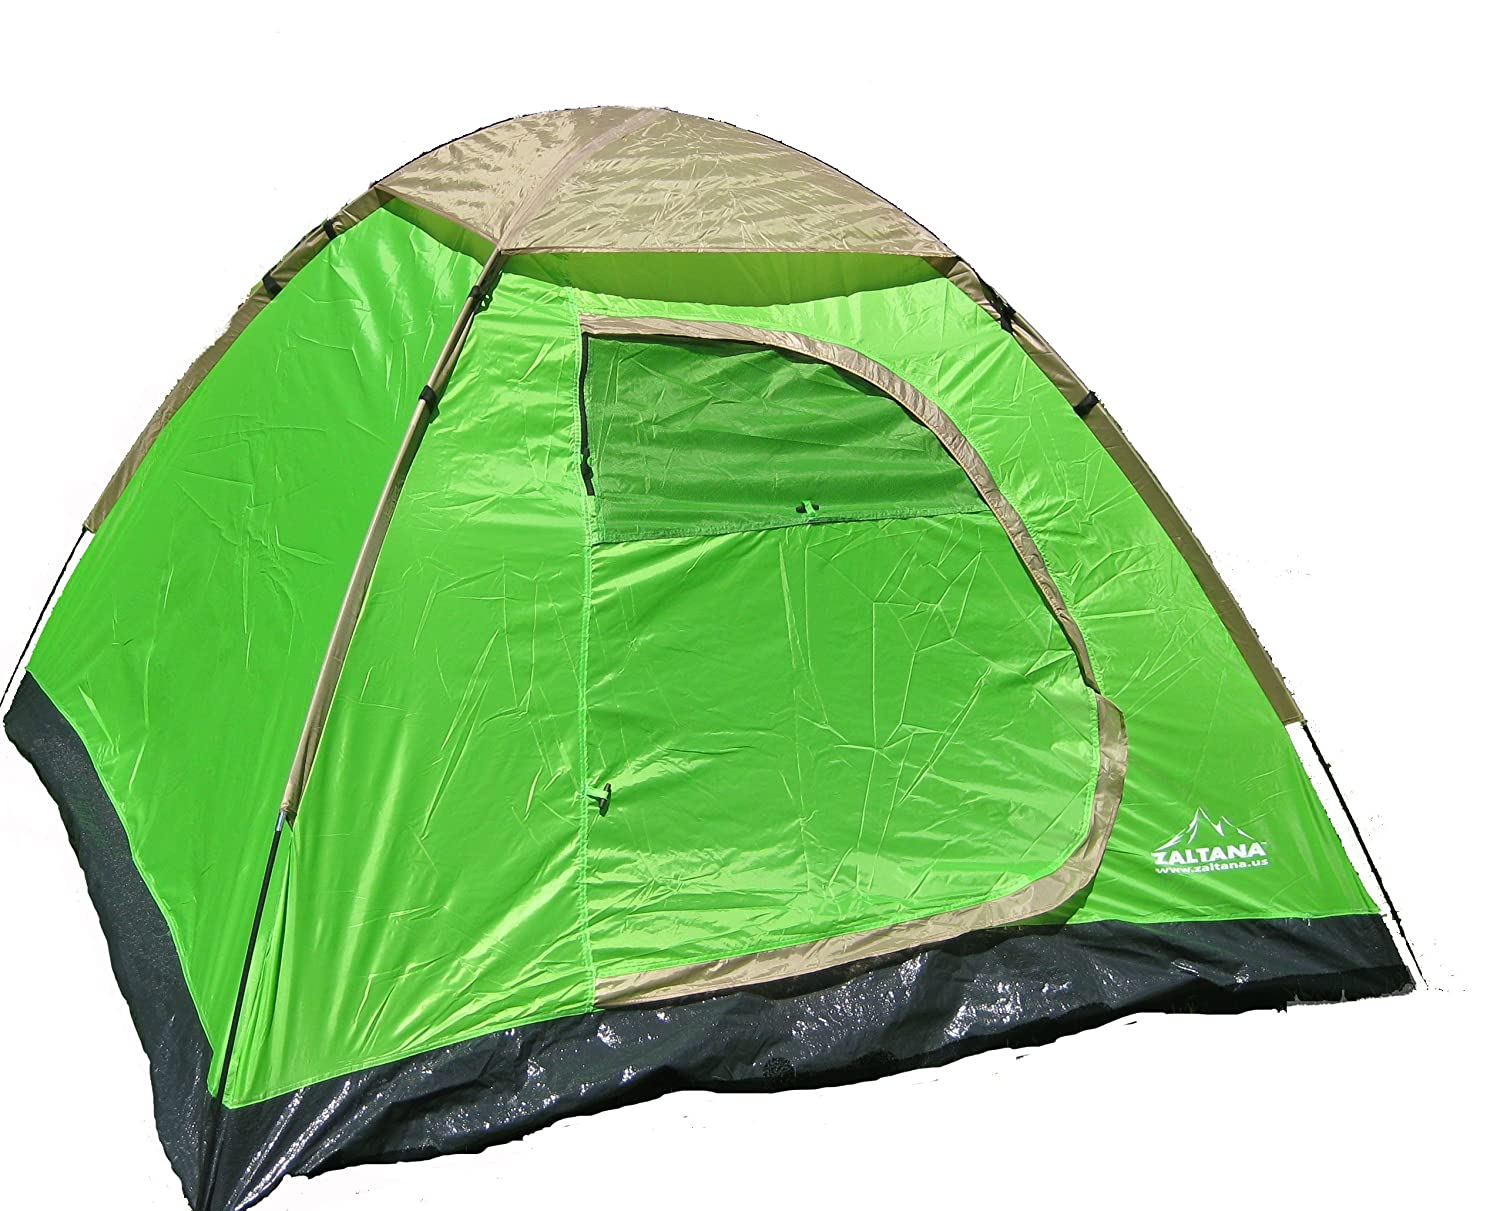 Zaltana 3 Person Dome Tent 7 x7 x4 3 3PT